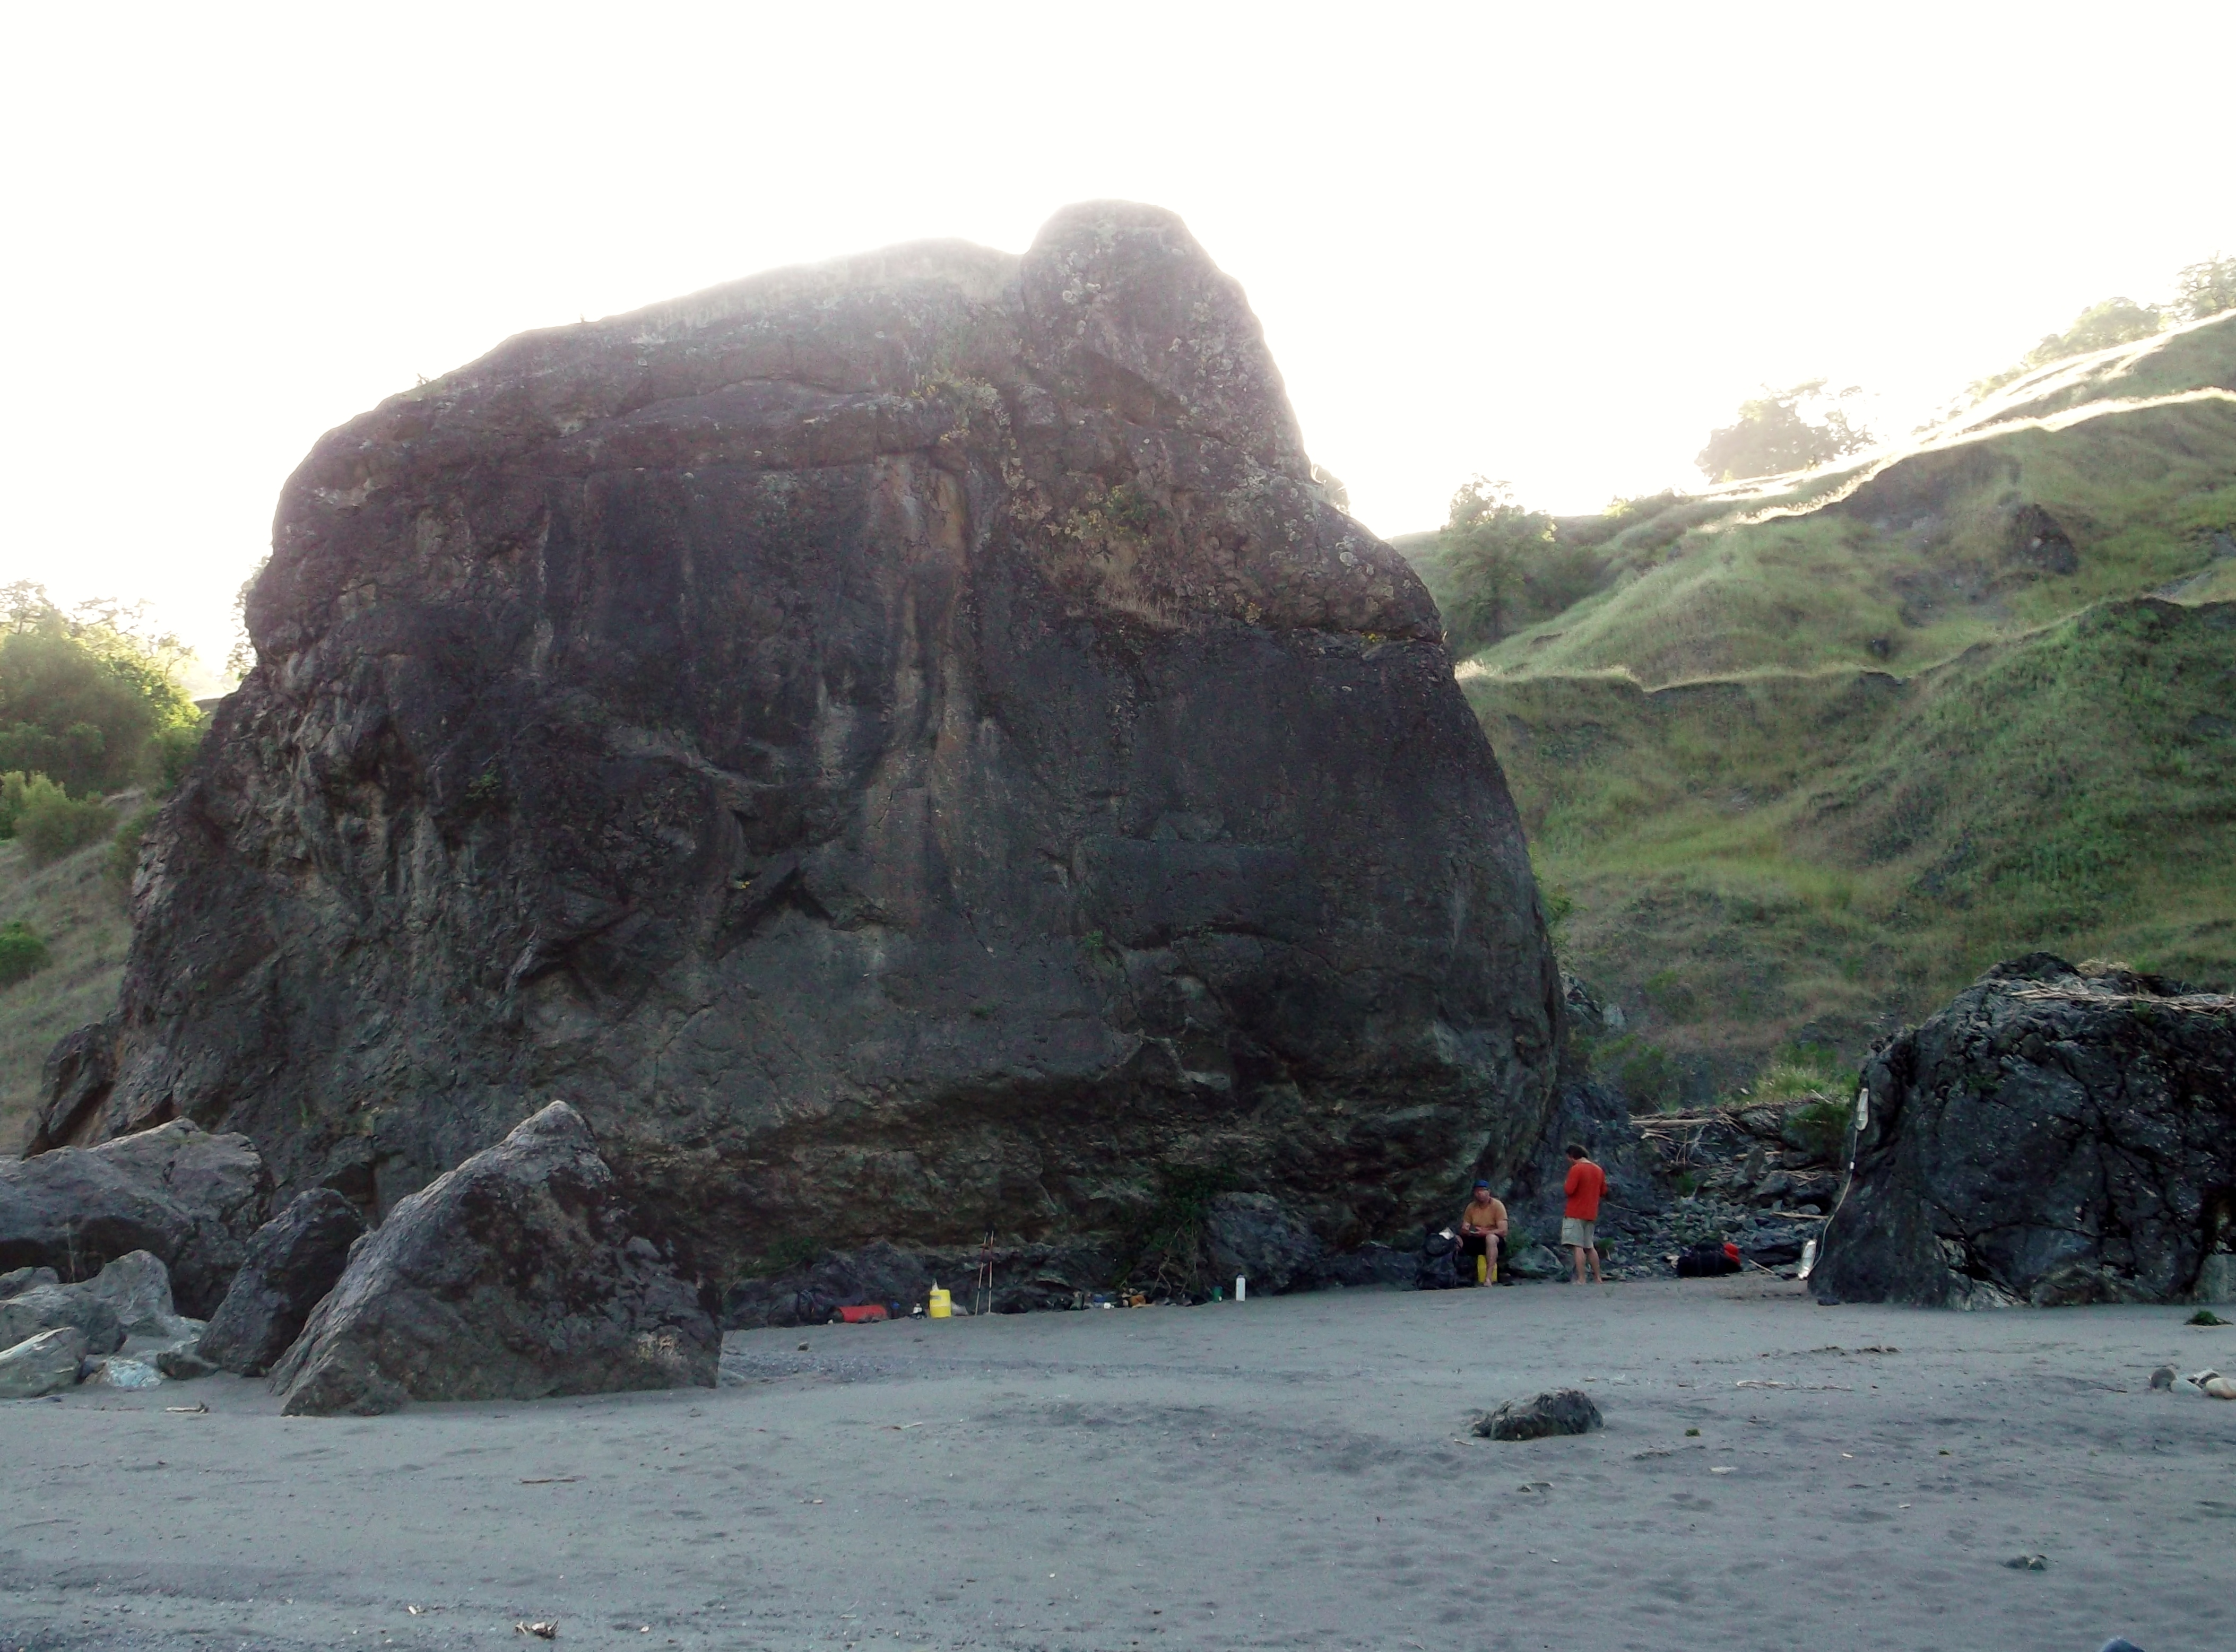 See if you can find the big black rock in this photograph. (photo by D. Sperededelozzi)